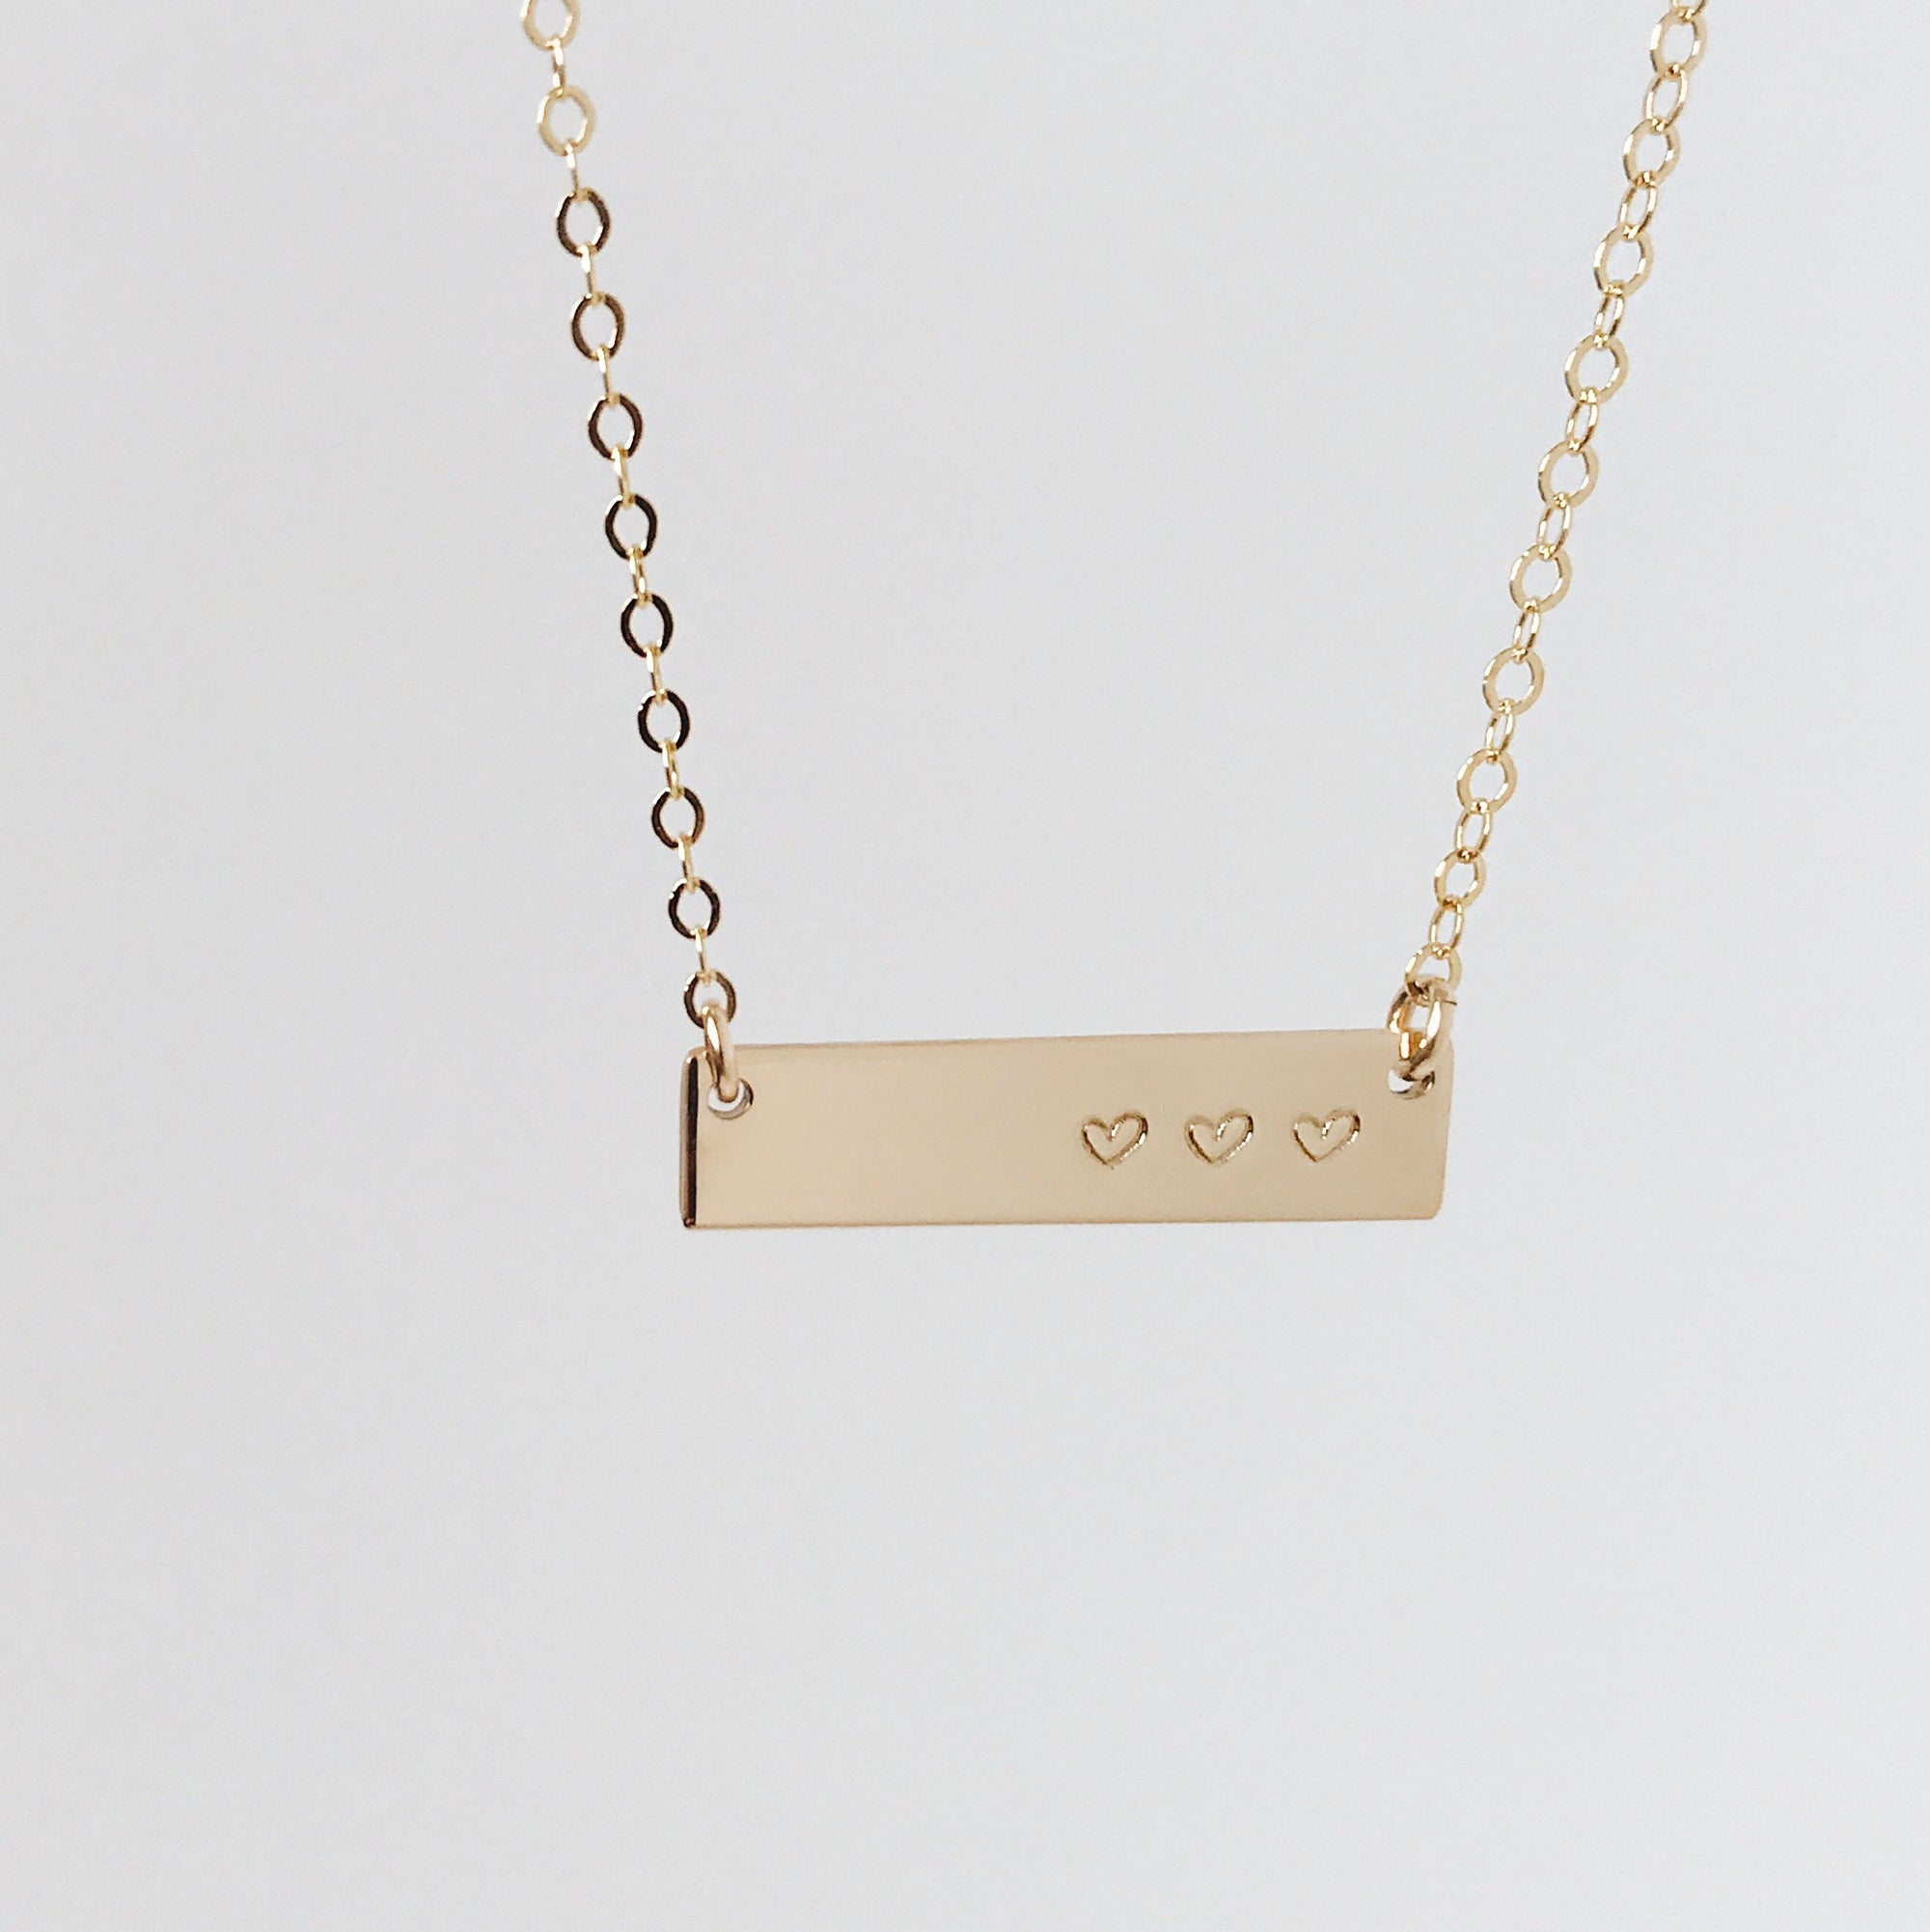 layered petite bar archives gold double jewelry gosia initial chains tag discs product four mini necklace initials meyer